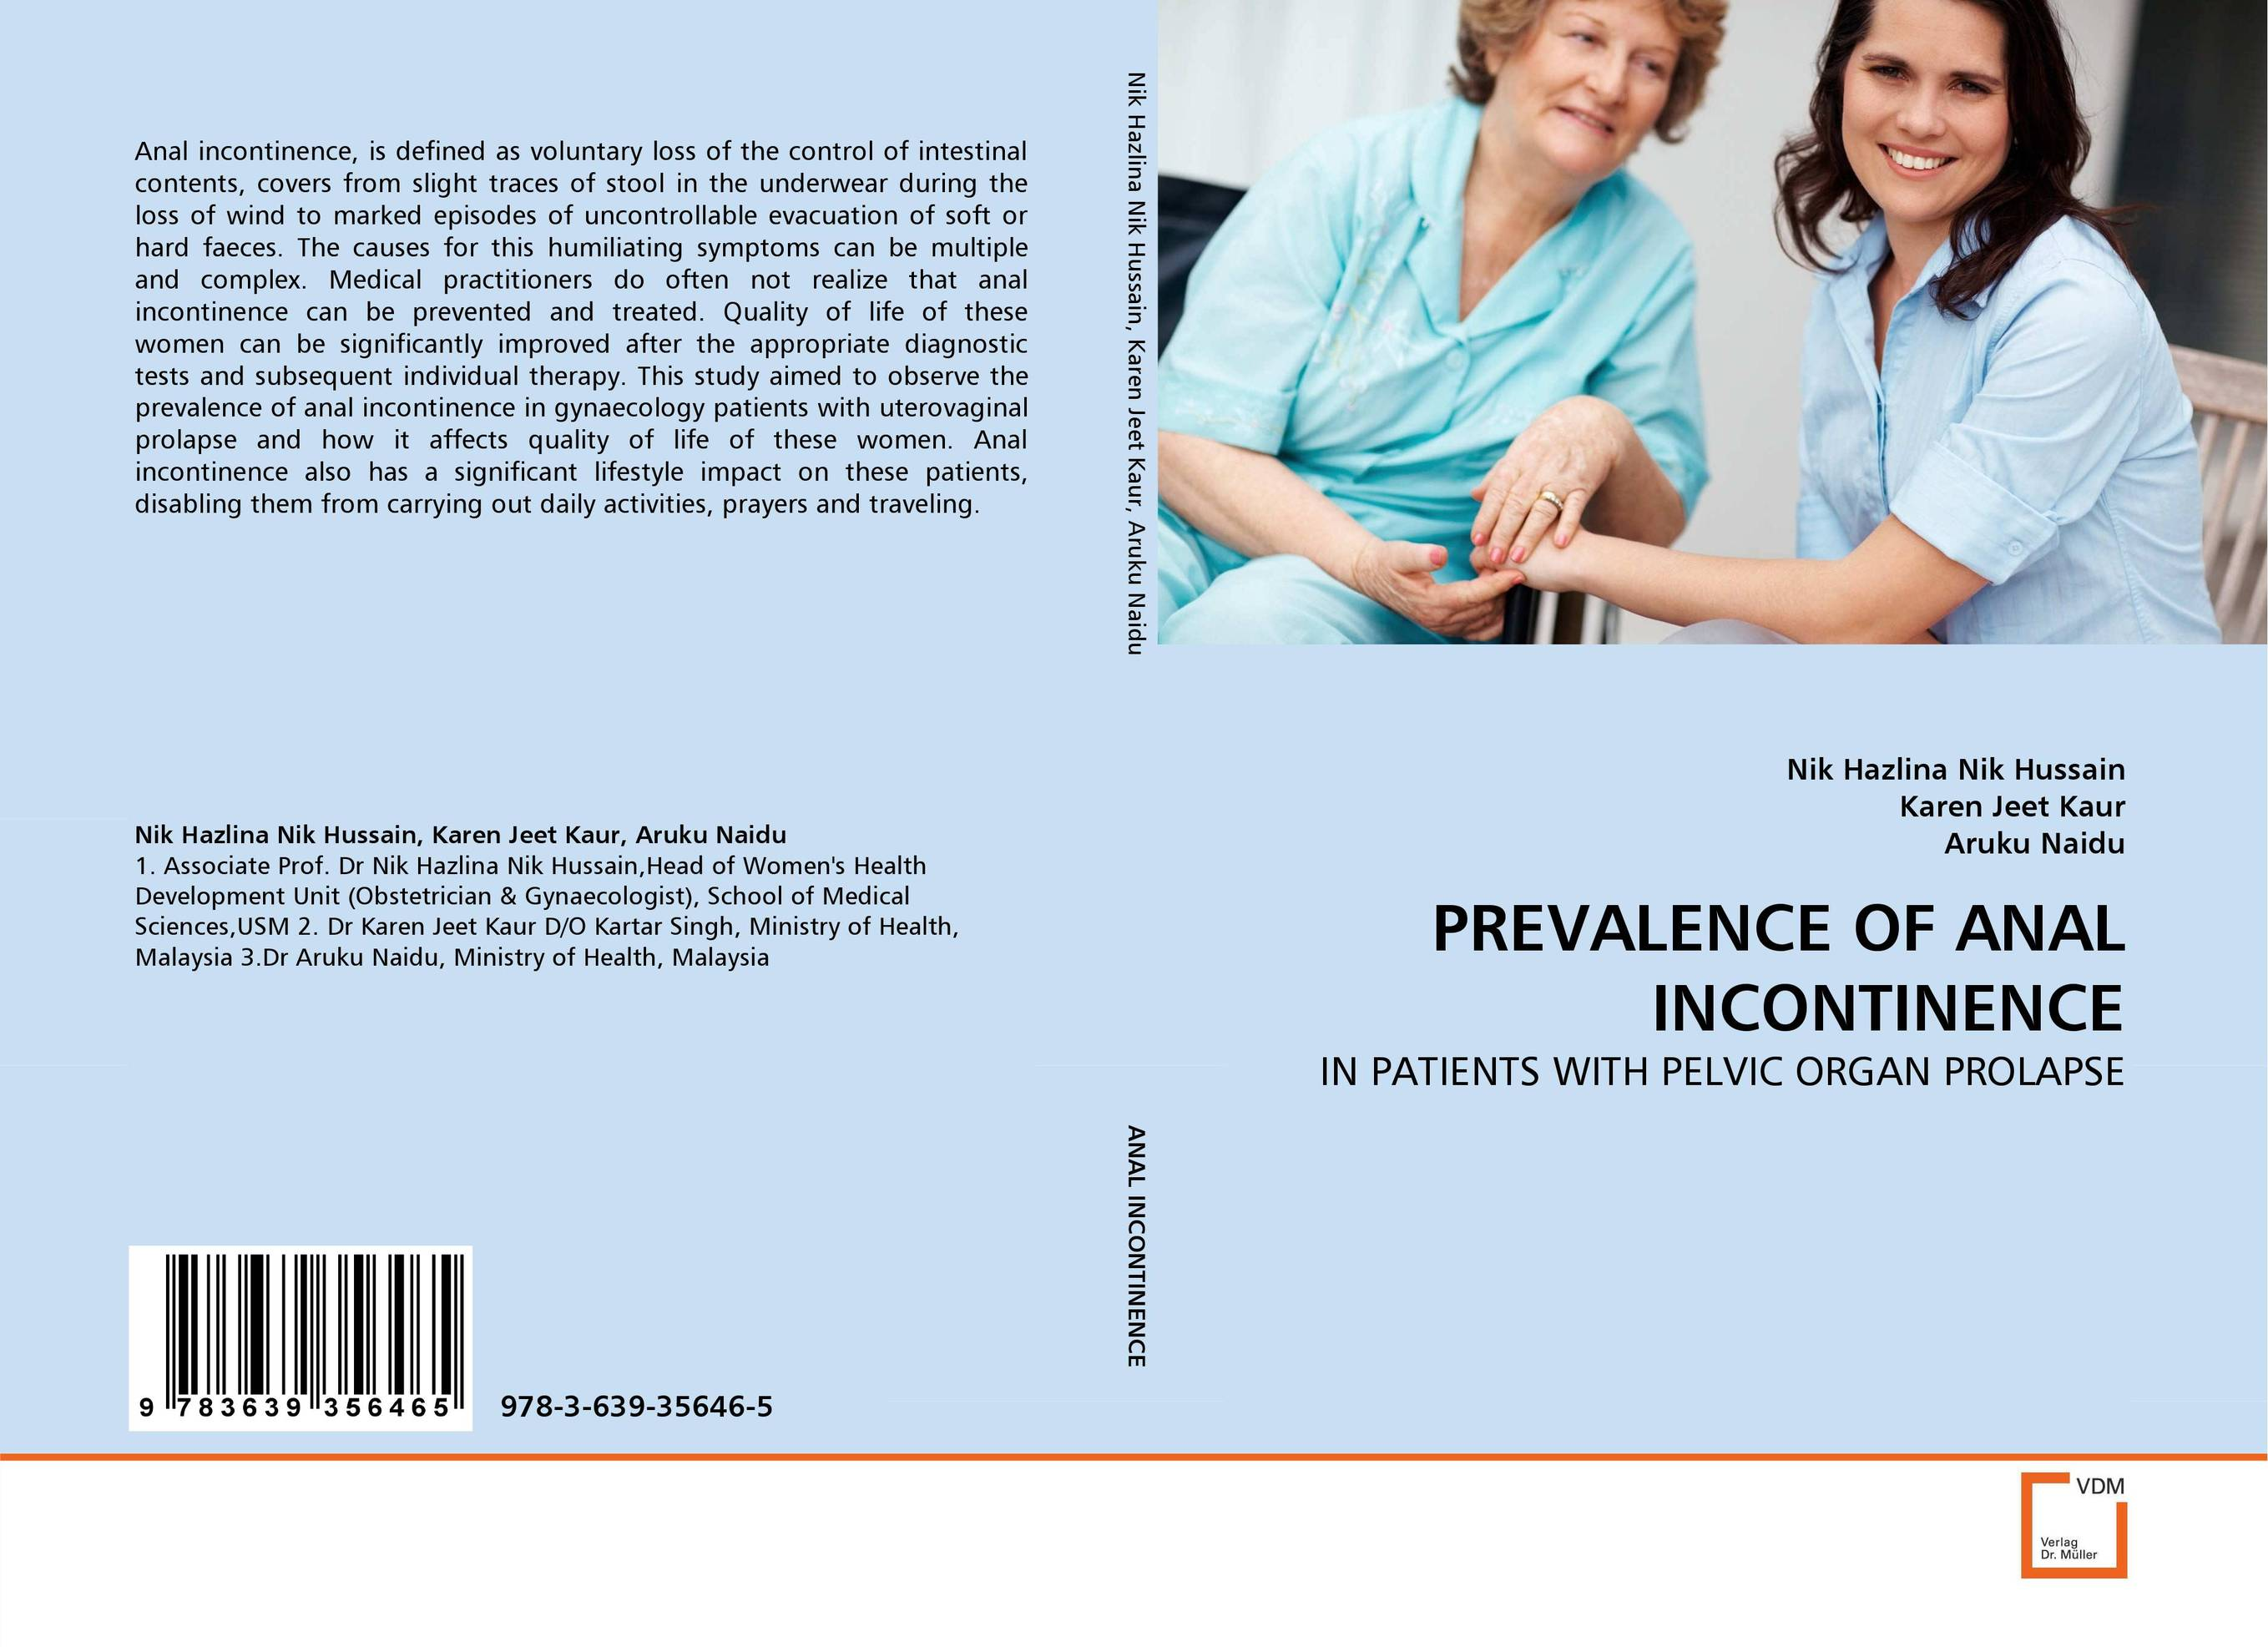 PREVALENCE OF ANAL INCONTINENCE prevalence of intestinal parasitosis among children